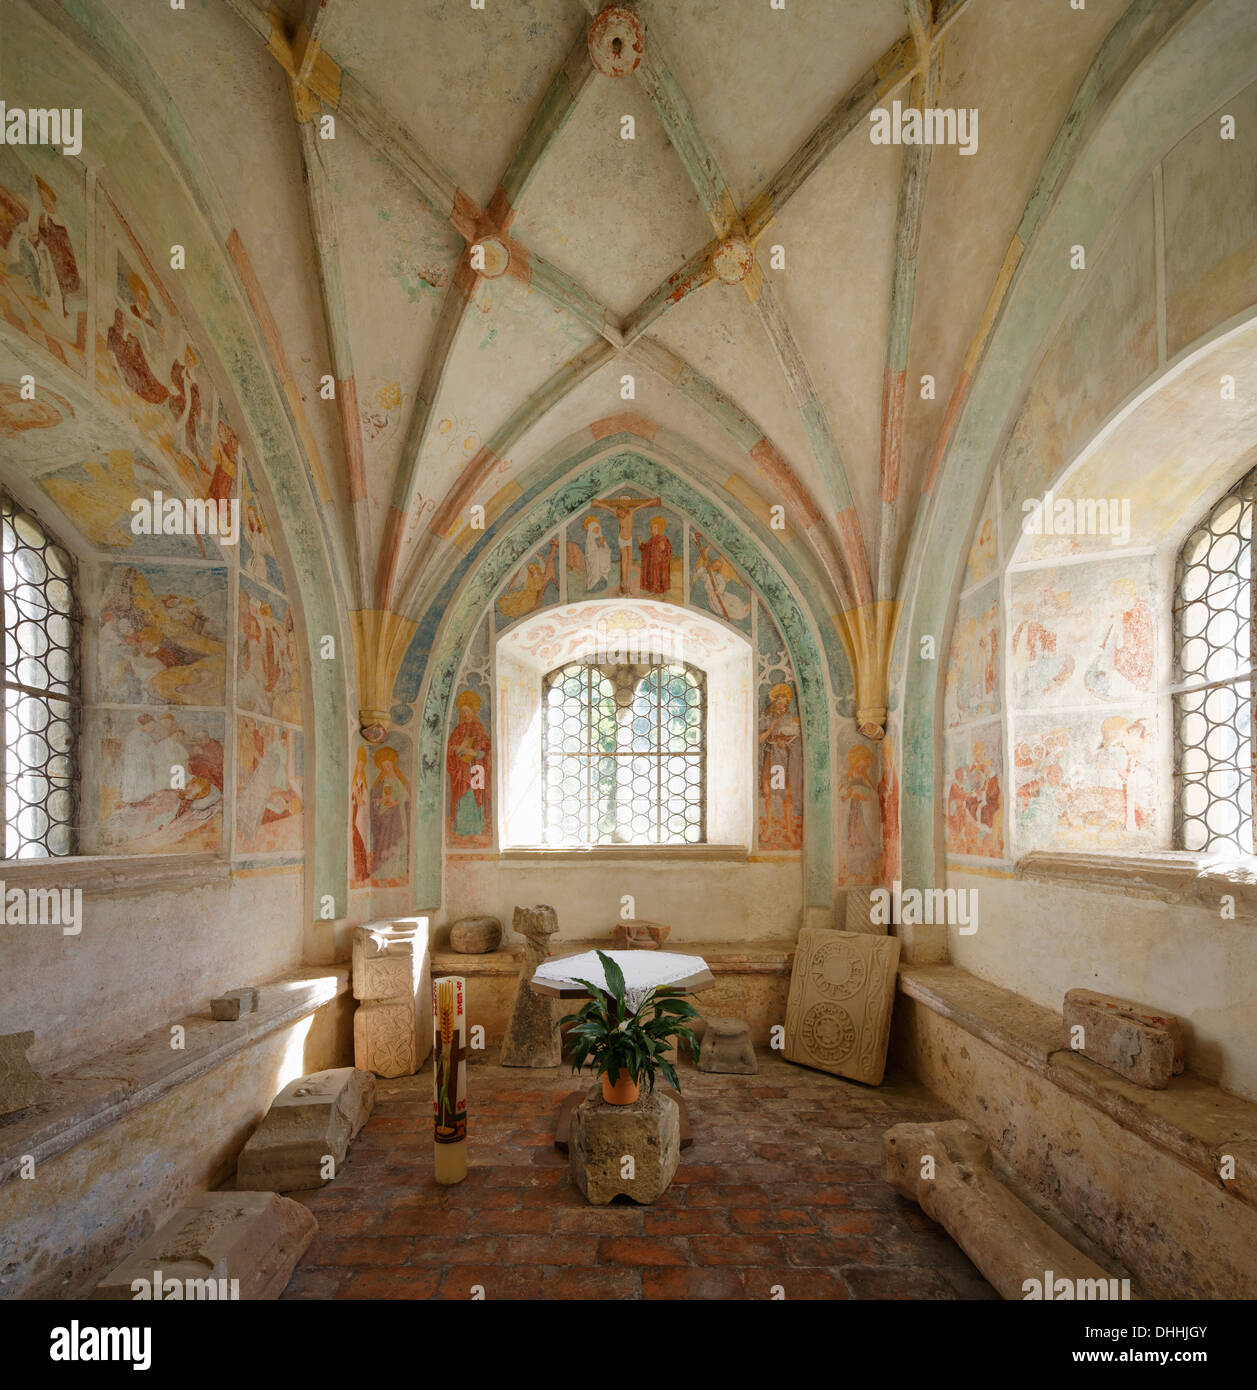 Fountain Chapel in the cloister, former Collegiate Church of St. John the Baptist, Steingaden, Pfaffenwinkel region - Stock Image